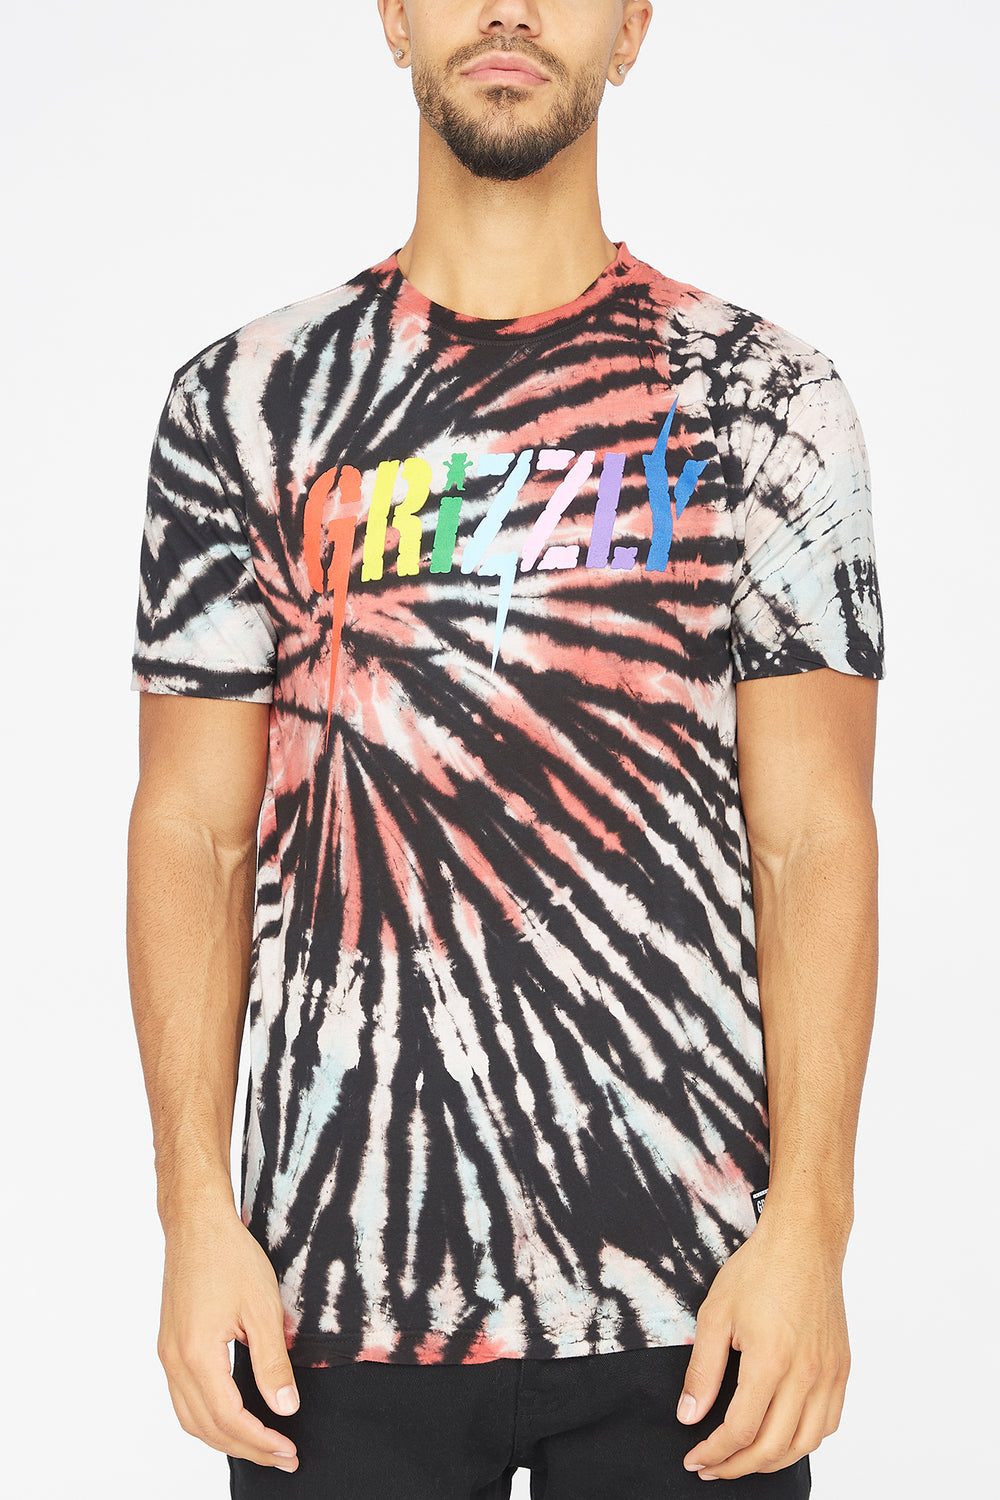 T-Shirt Tie-Dye Incite Grizzly Multi